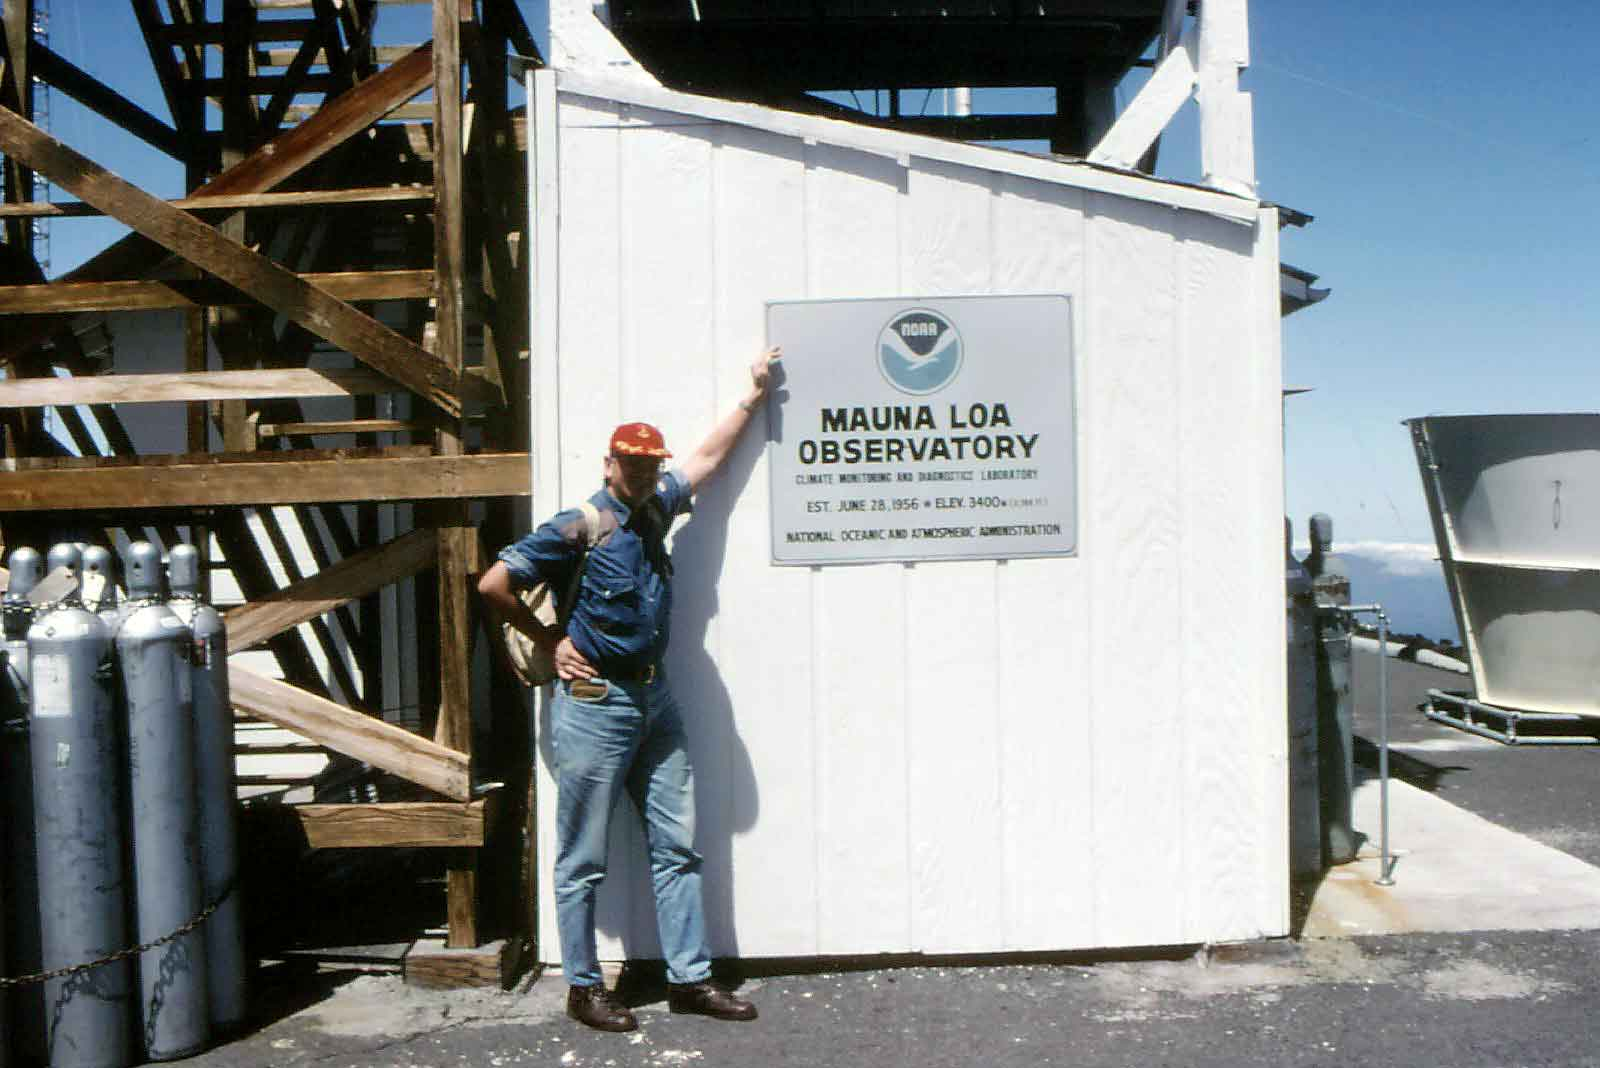 Download my abstract 'The amount of non-fossil CO2 in the atmosphere' (PDF; 33 kbytes). The photograph shows me at the Mauna Loa Observatory in Hawaii.